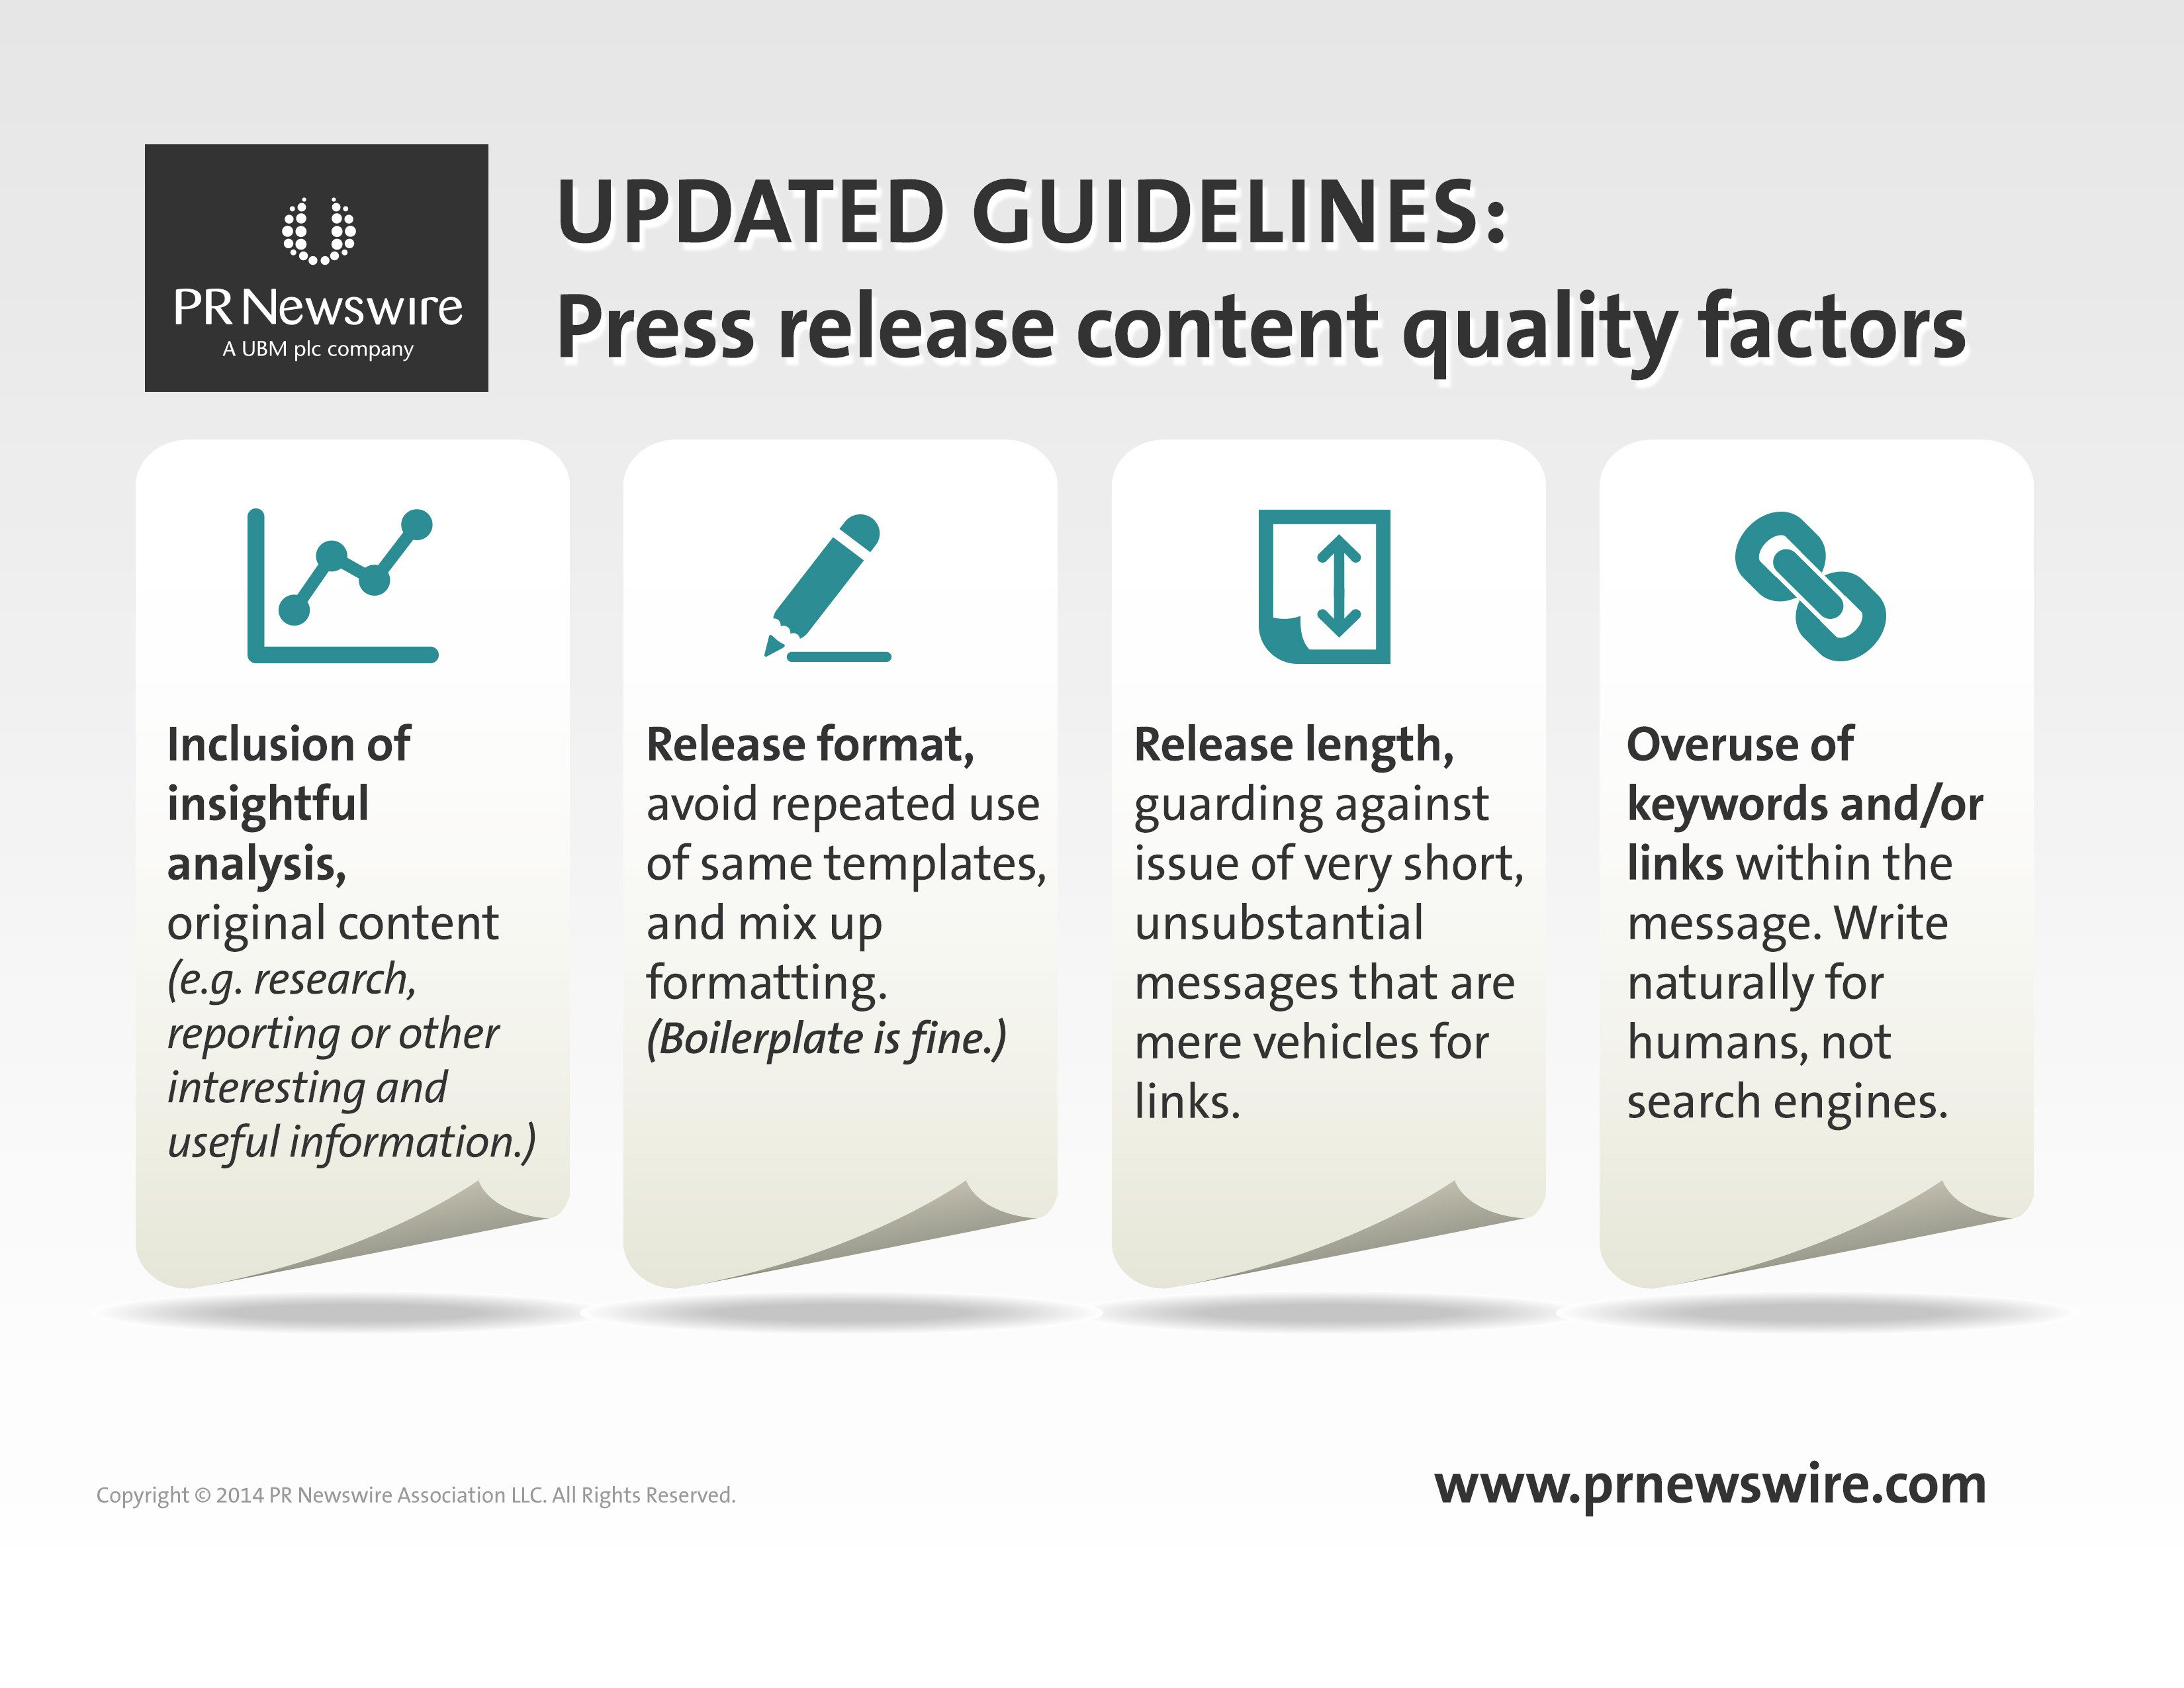 Tips for press release writing and distribution